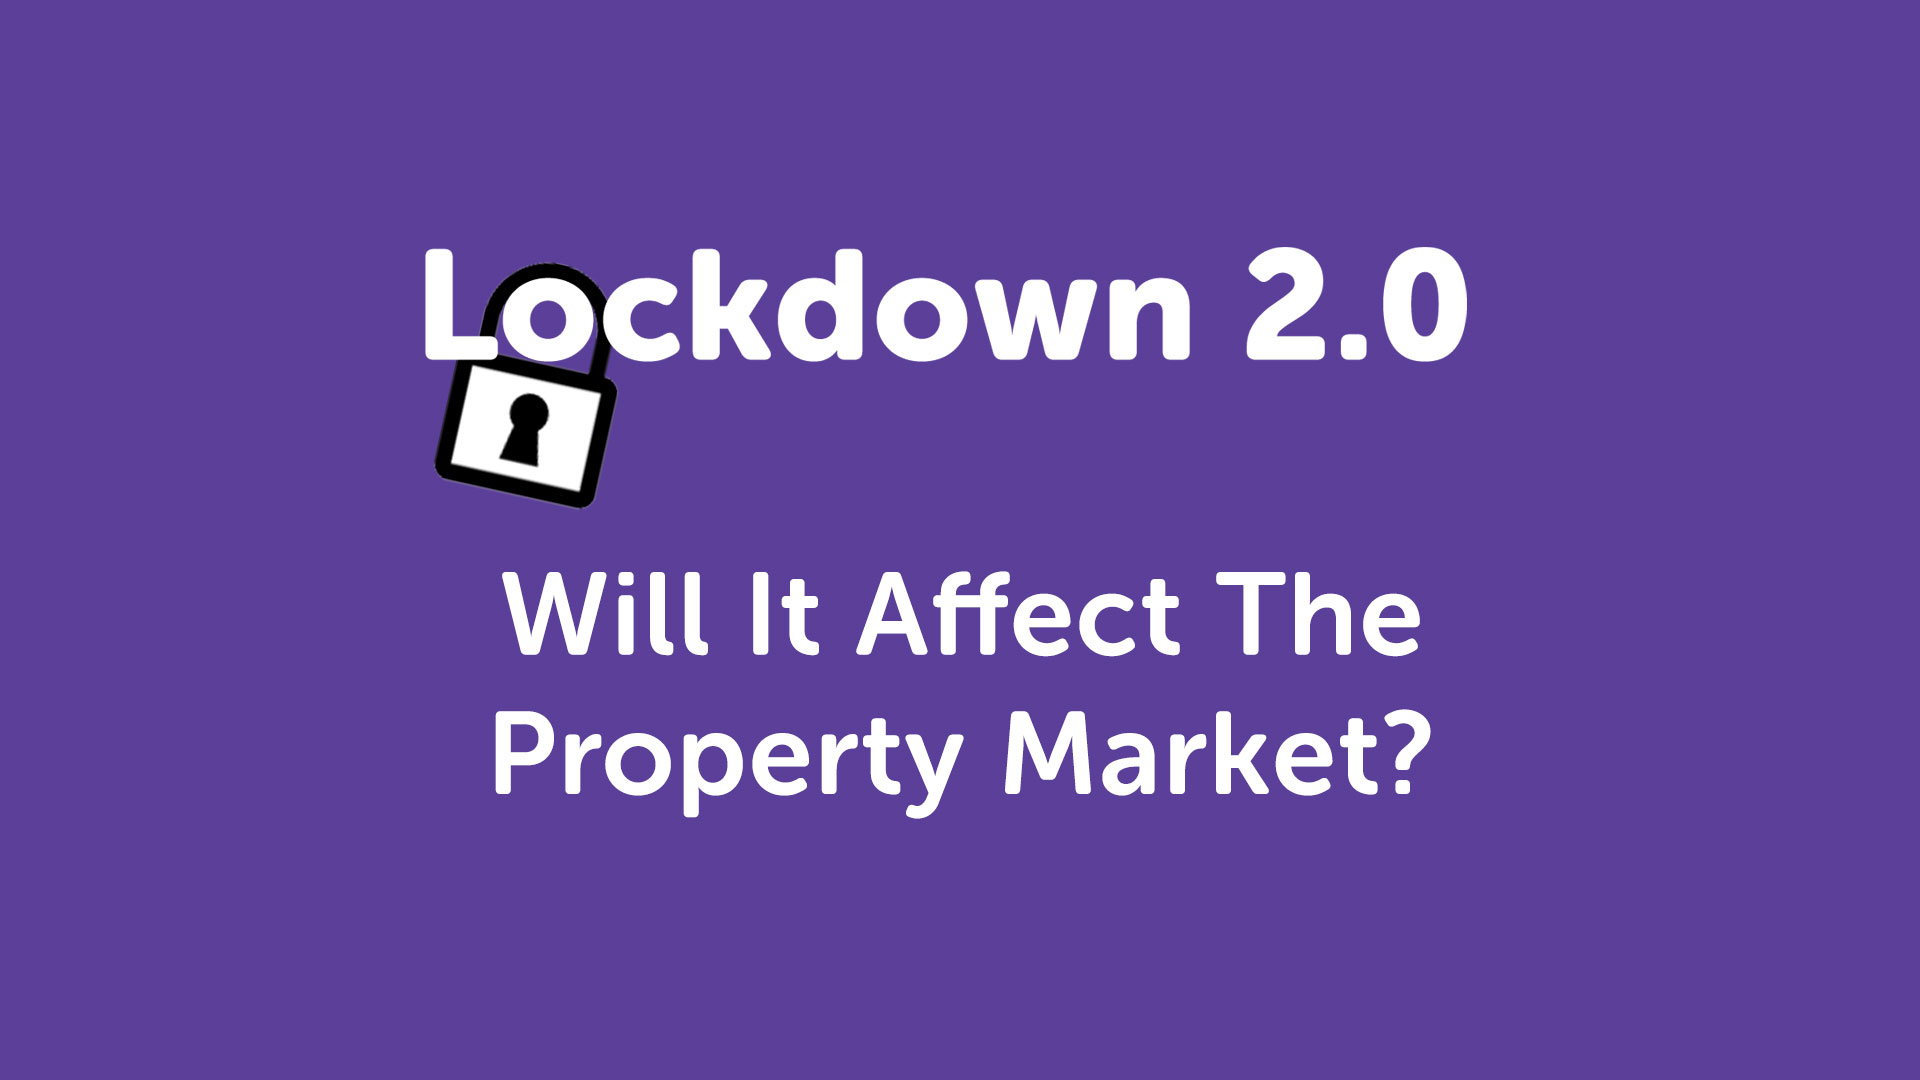 Lockdown property market advice in Newcastle